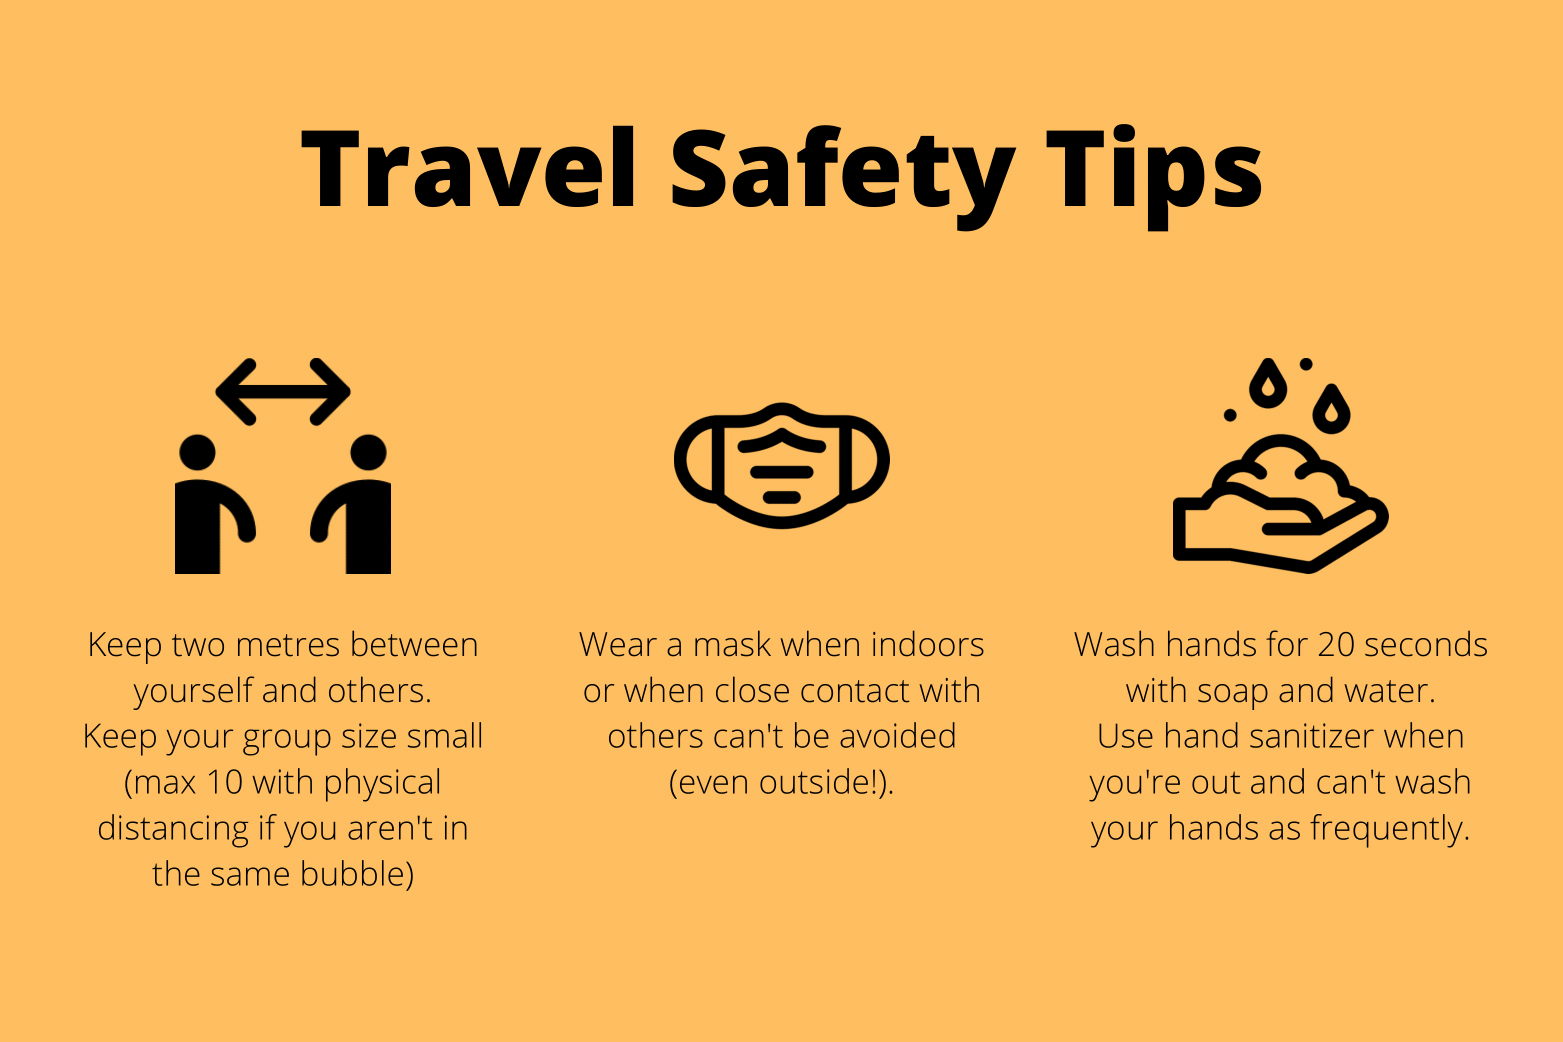 Travel Safety Tips: Keep two metres between yourself and others. Keep your group size small (max 10 with physical distancing if you aren't in the same bubble). Wear a mask when indoors or when close contact with others can't be avoided (even outside!). Wash hands for 20 seconds with soap and water. Use hand sanitizer when you're out and can't wash your hands as frequently.